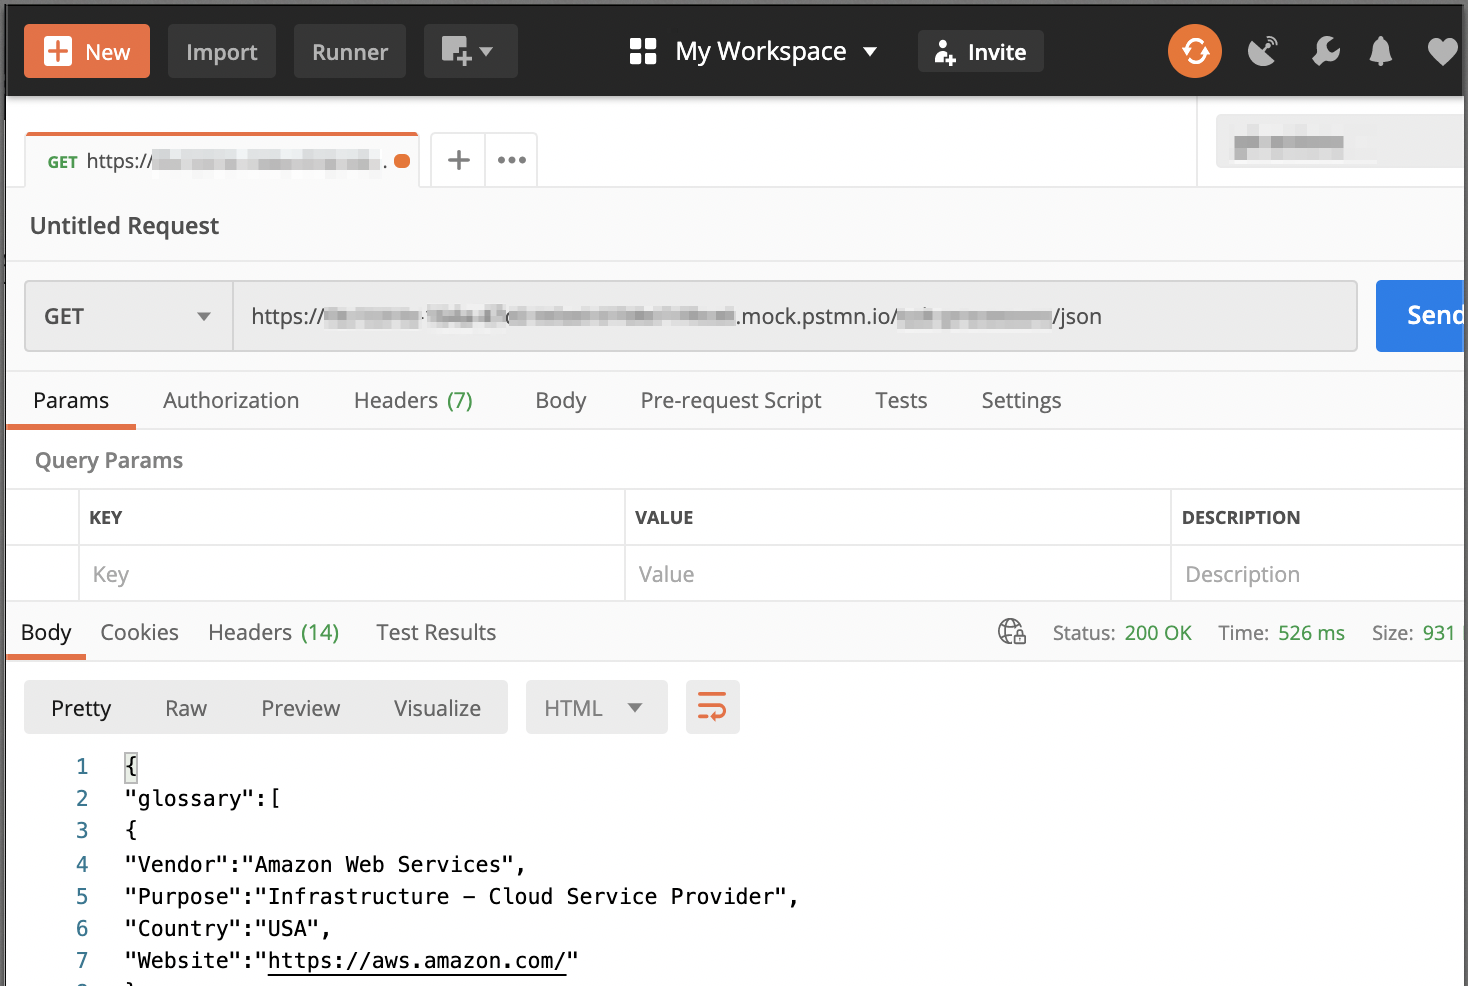 Image of GET Request to API endpoint returning JSON in Postman Client